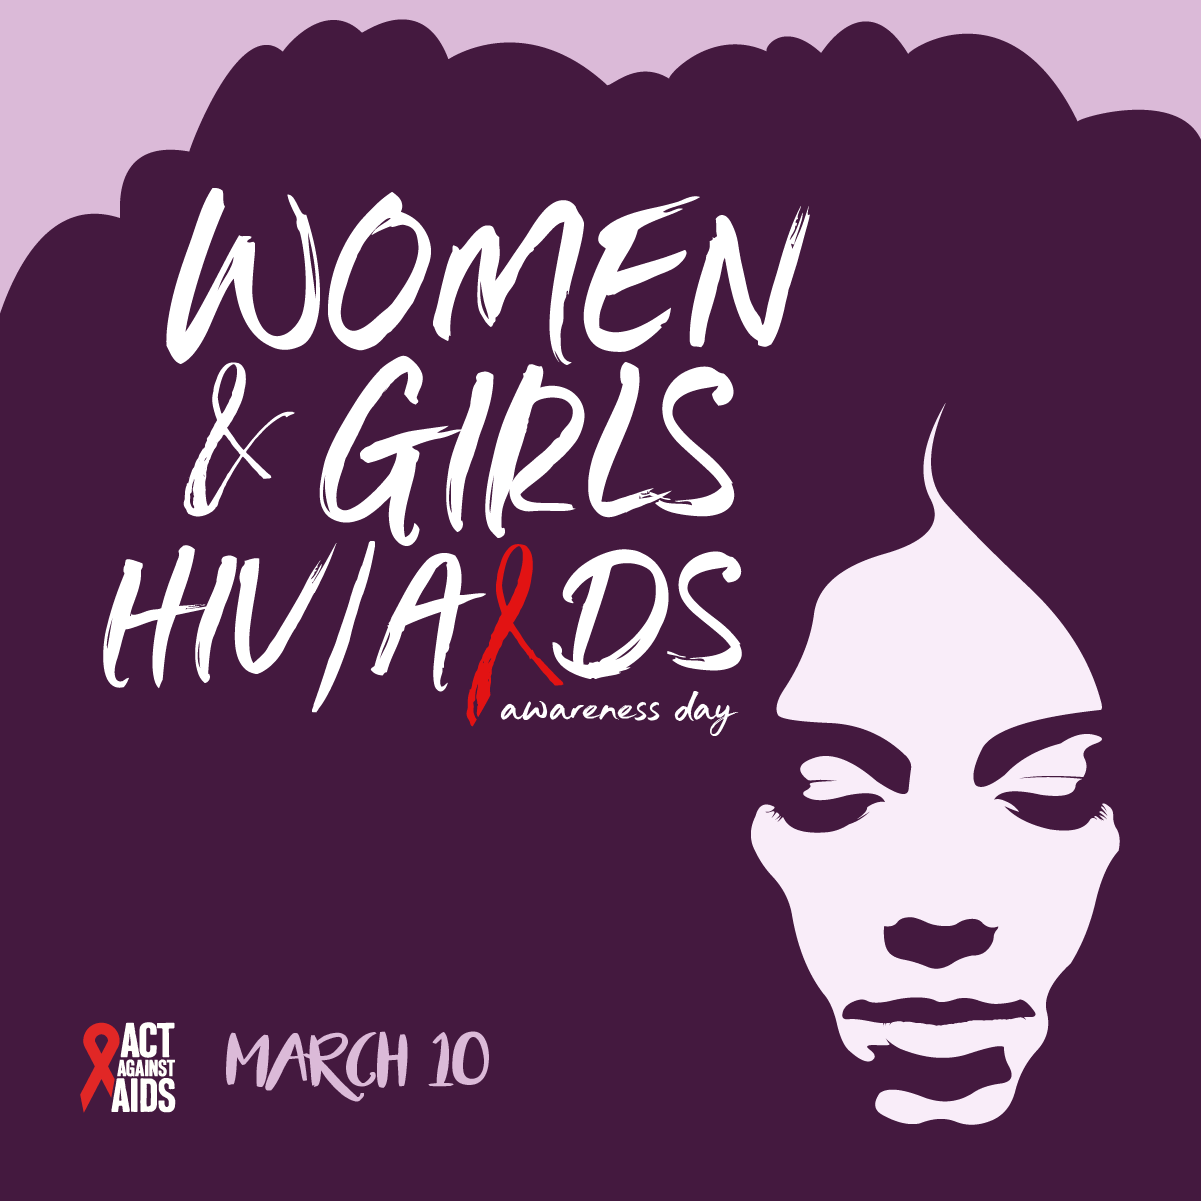 National Women & Girls HIV/AIDS Awareness Day : March 10